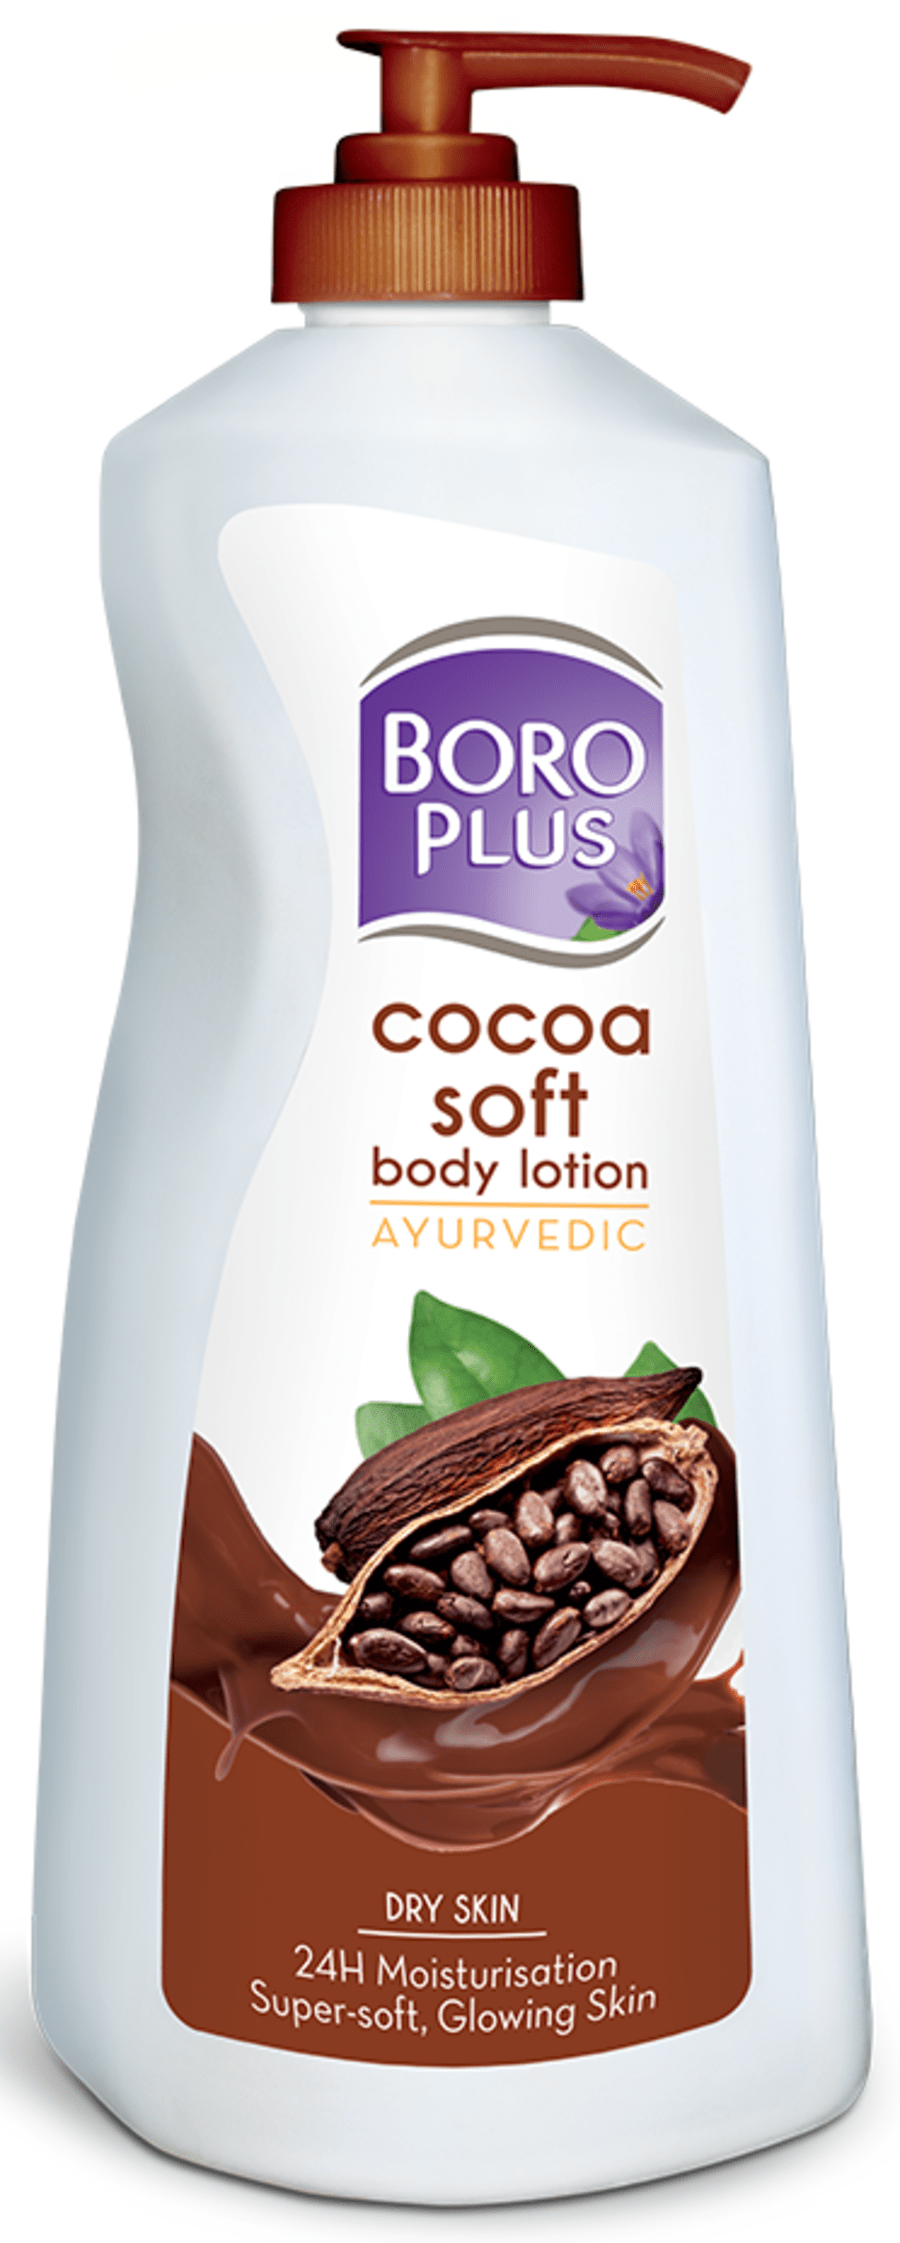 Boro Plus Cocoa Soft Body Lotion - 400ml